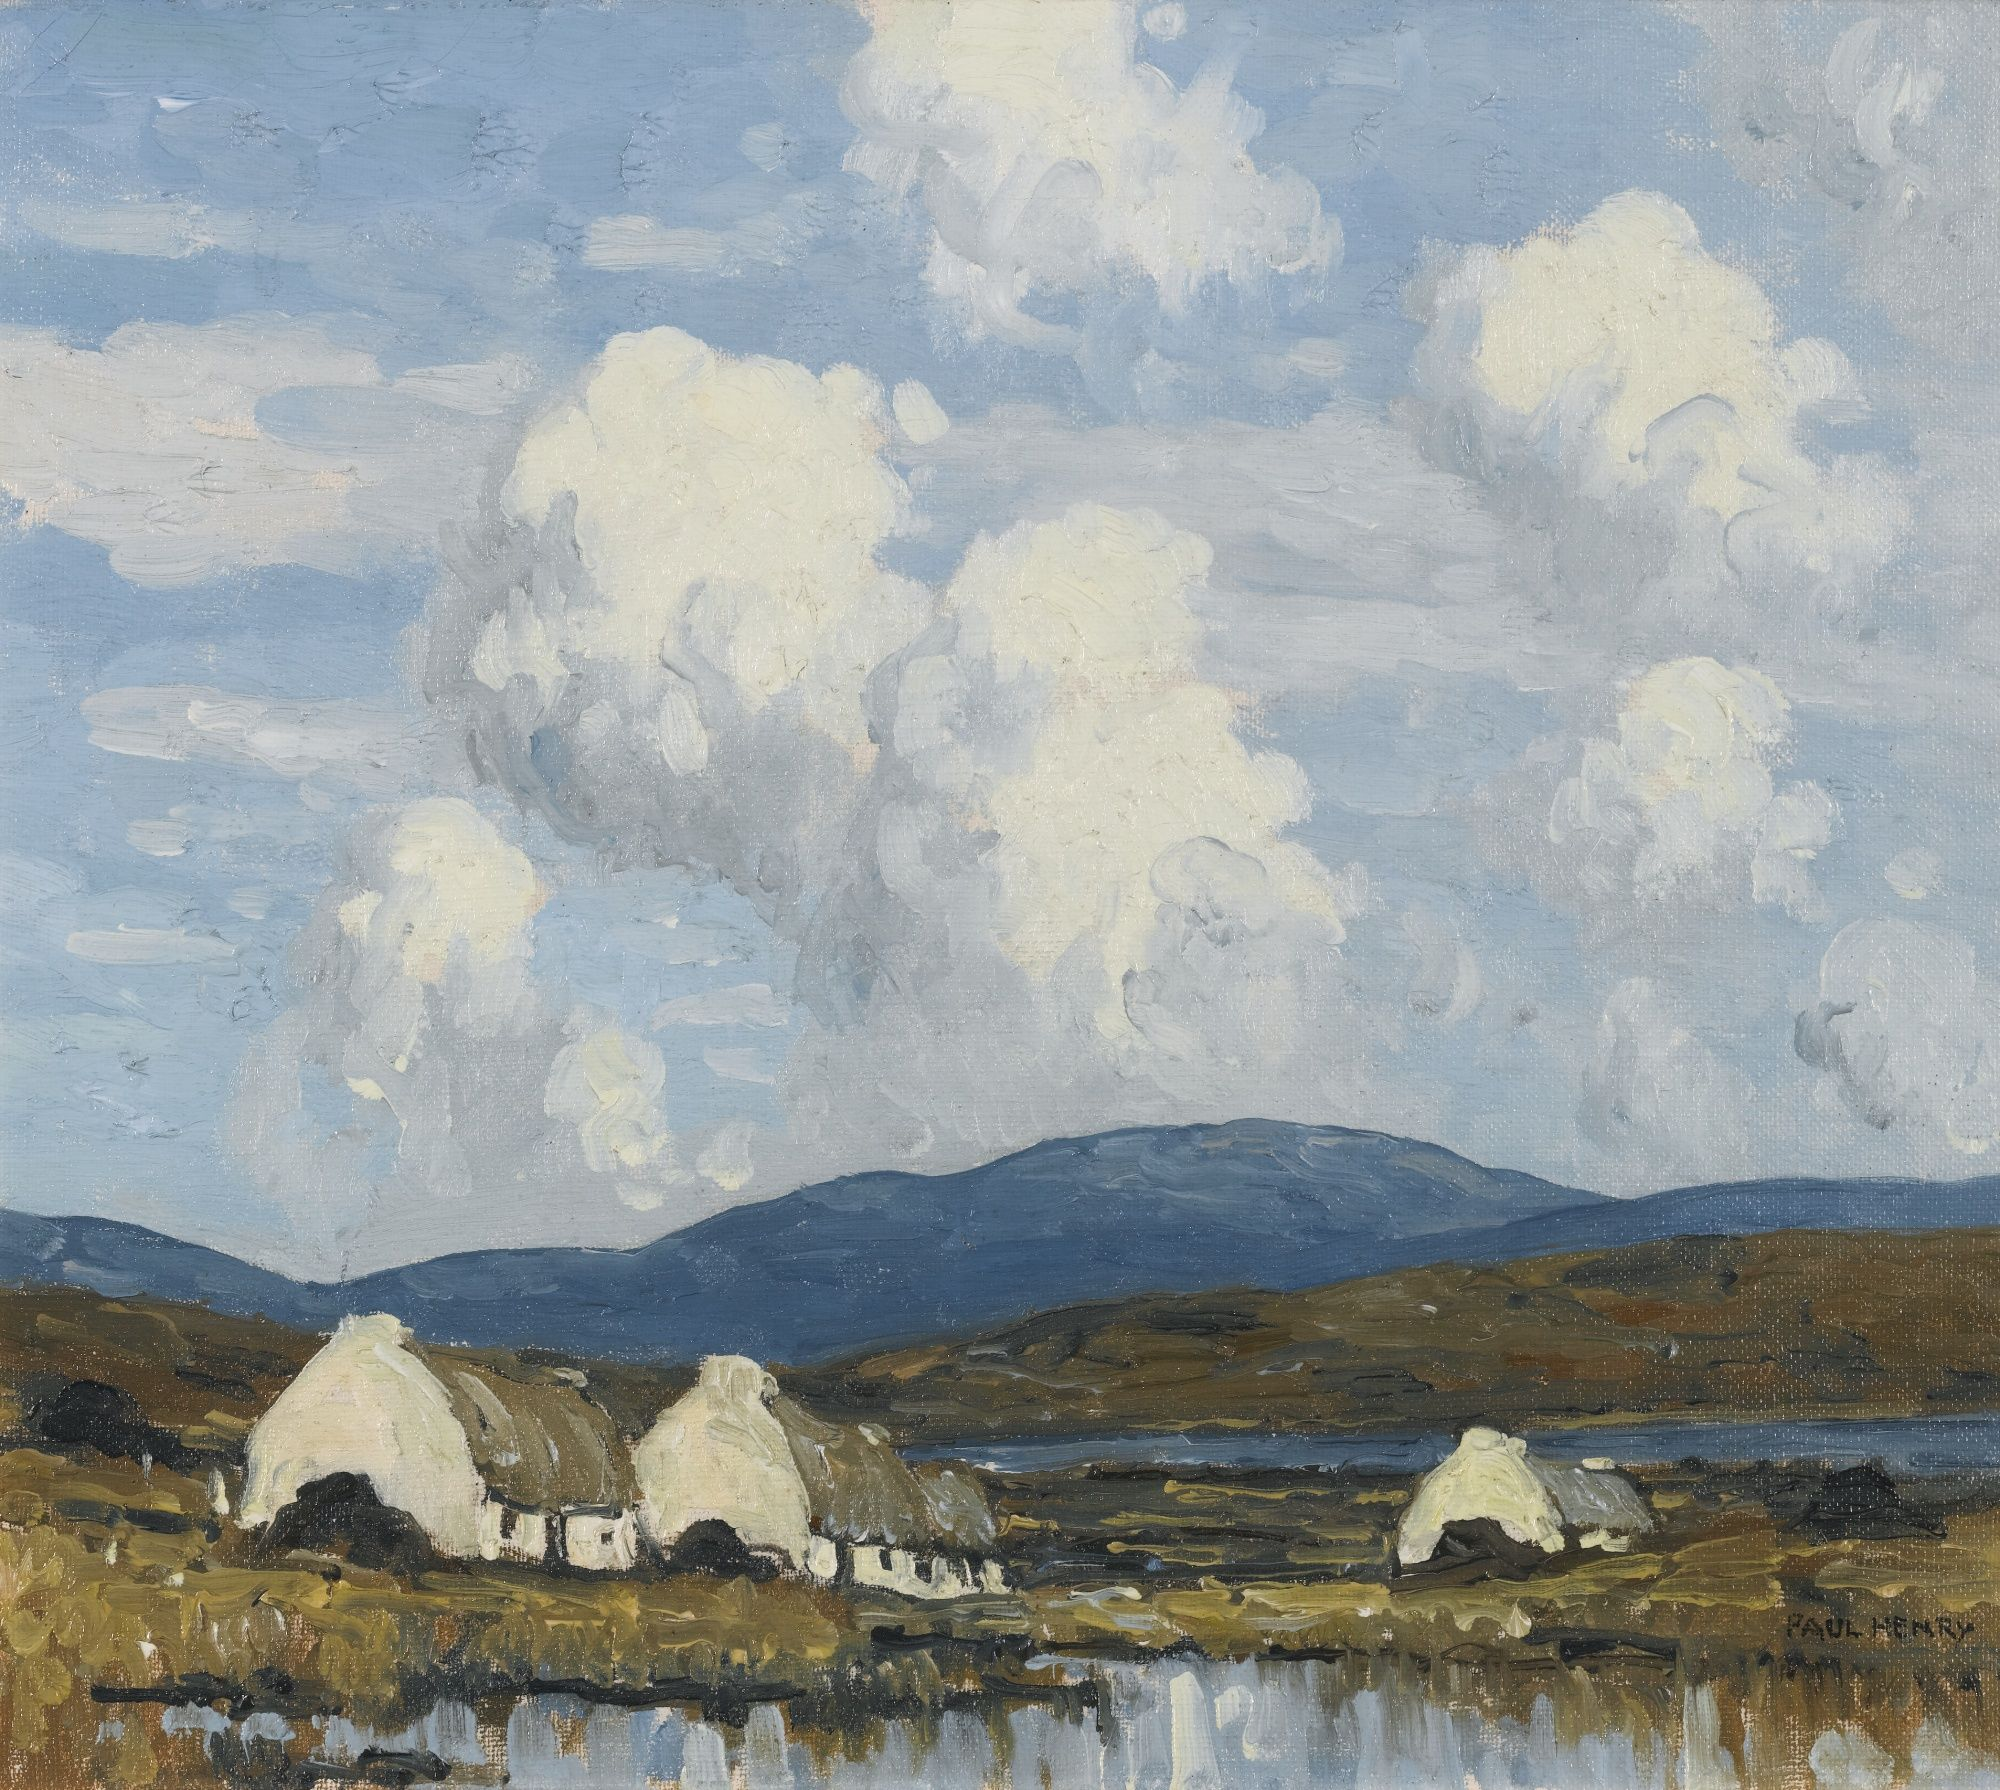 Paul Henry, R.H.A., R.U.A. Cottages in the West Irish